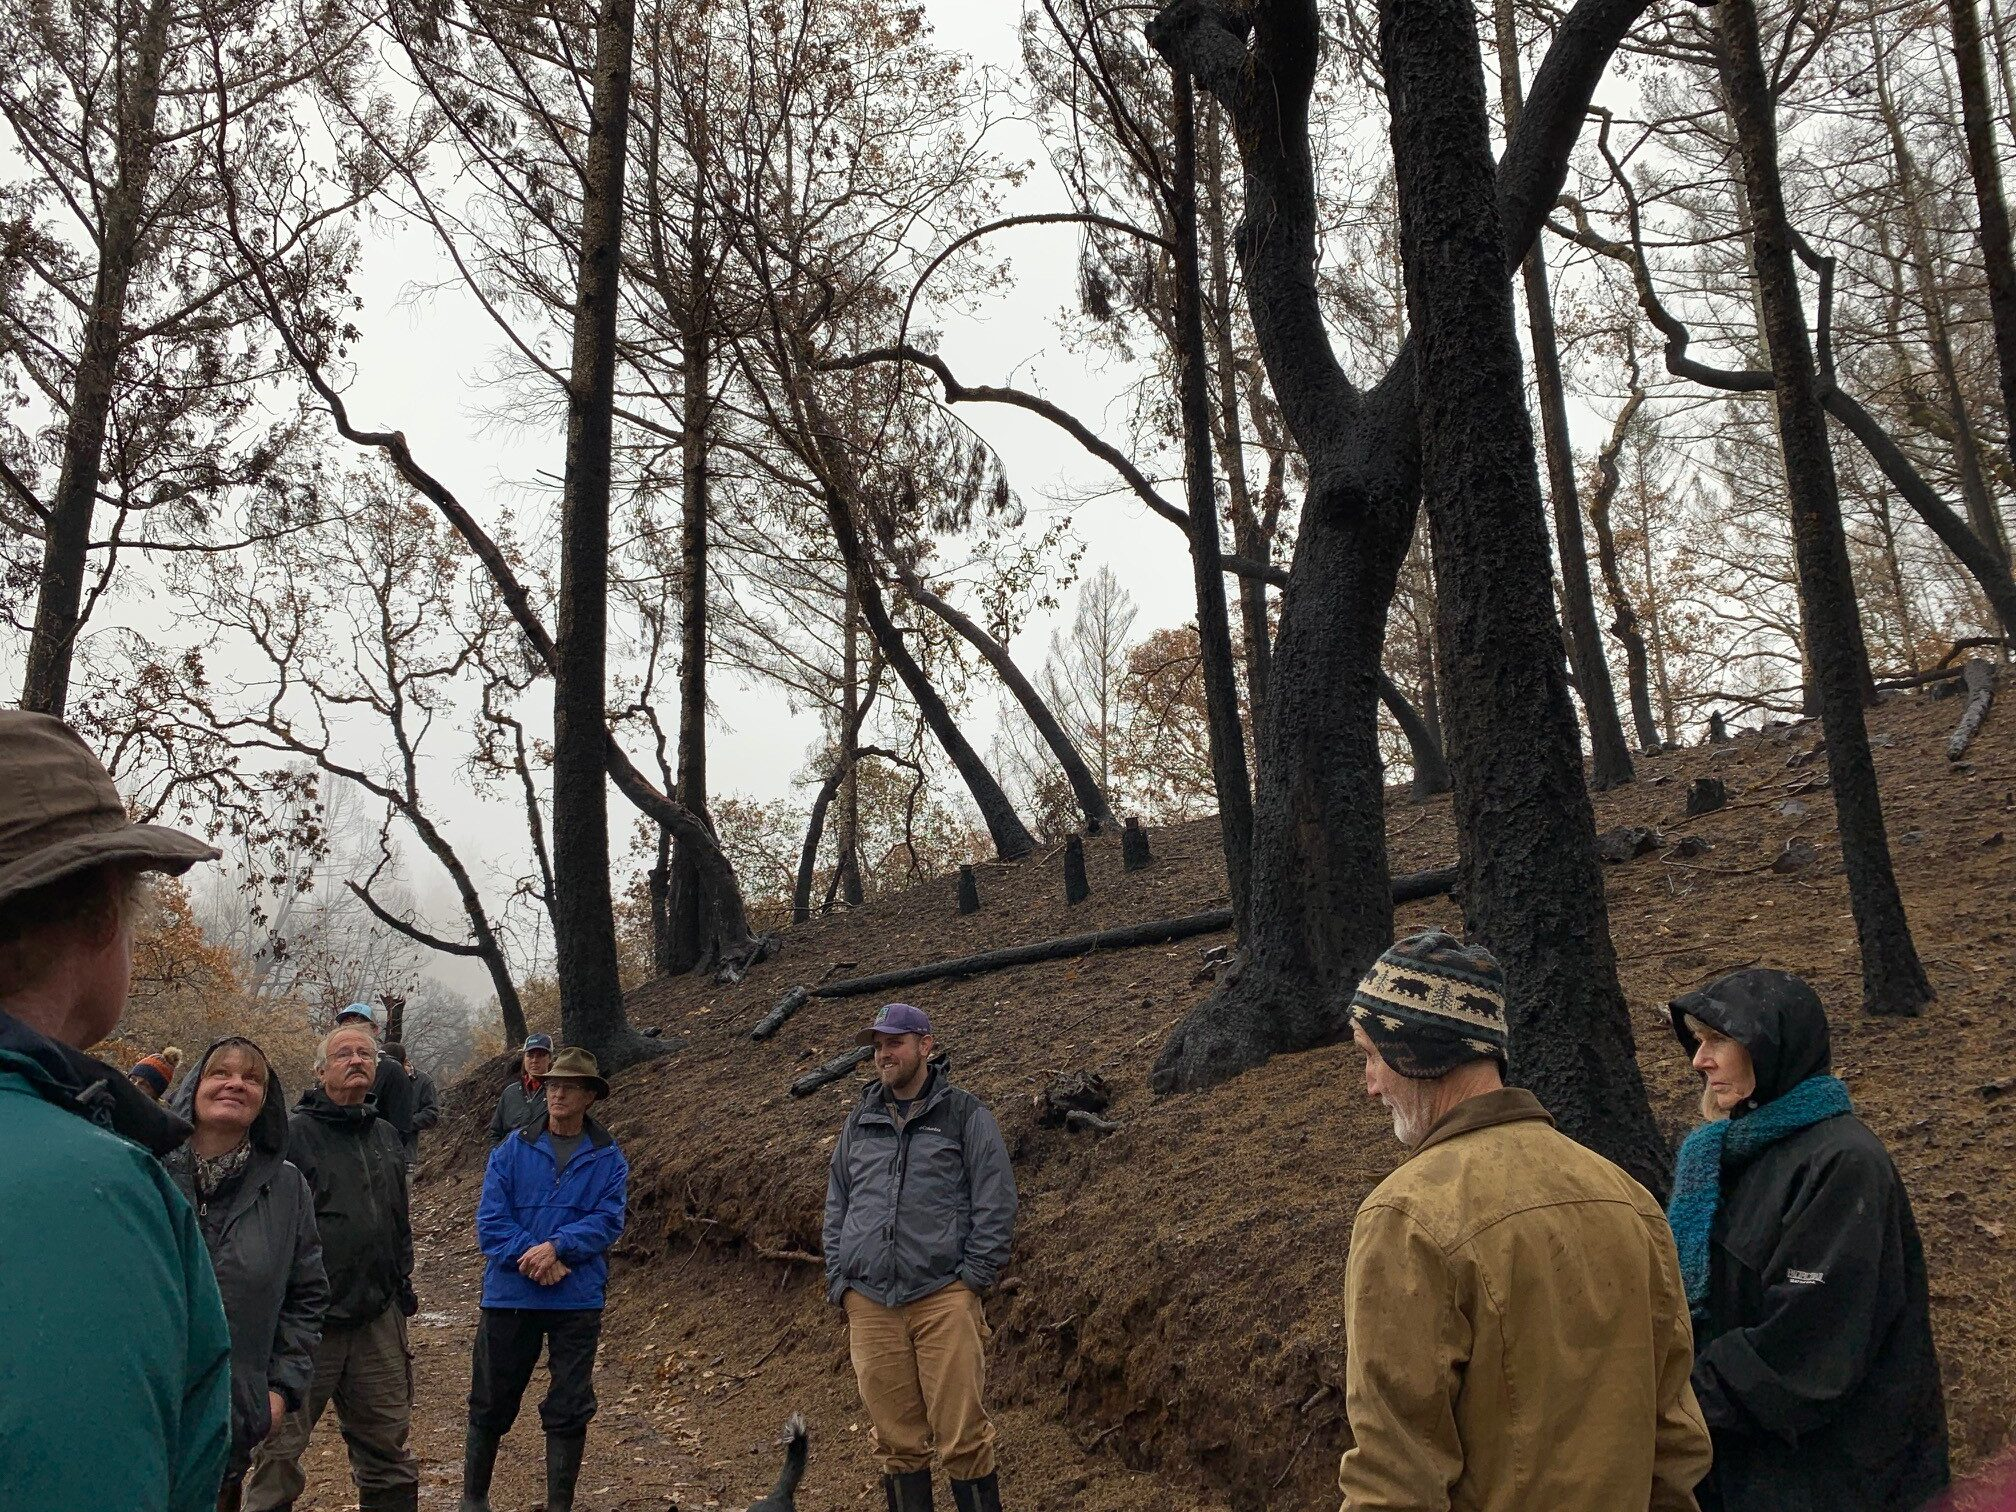 Staff speaks to small group near burned trees